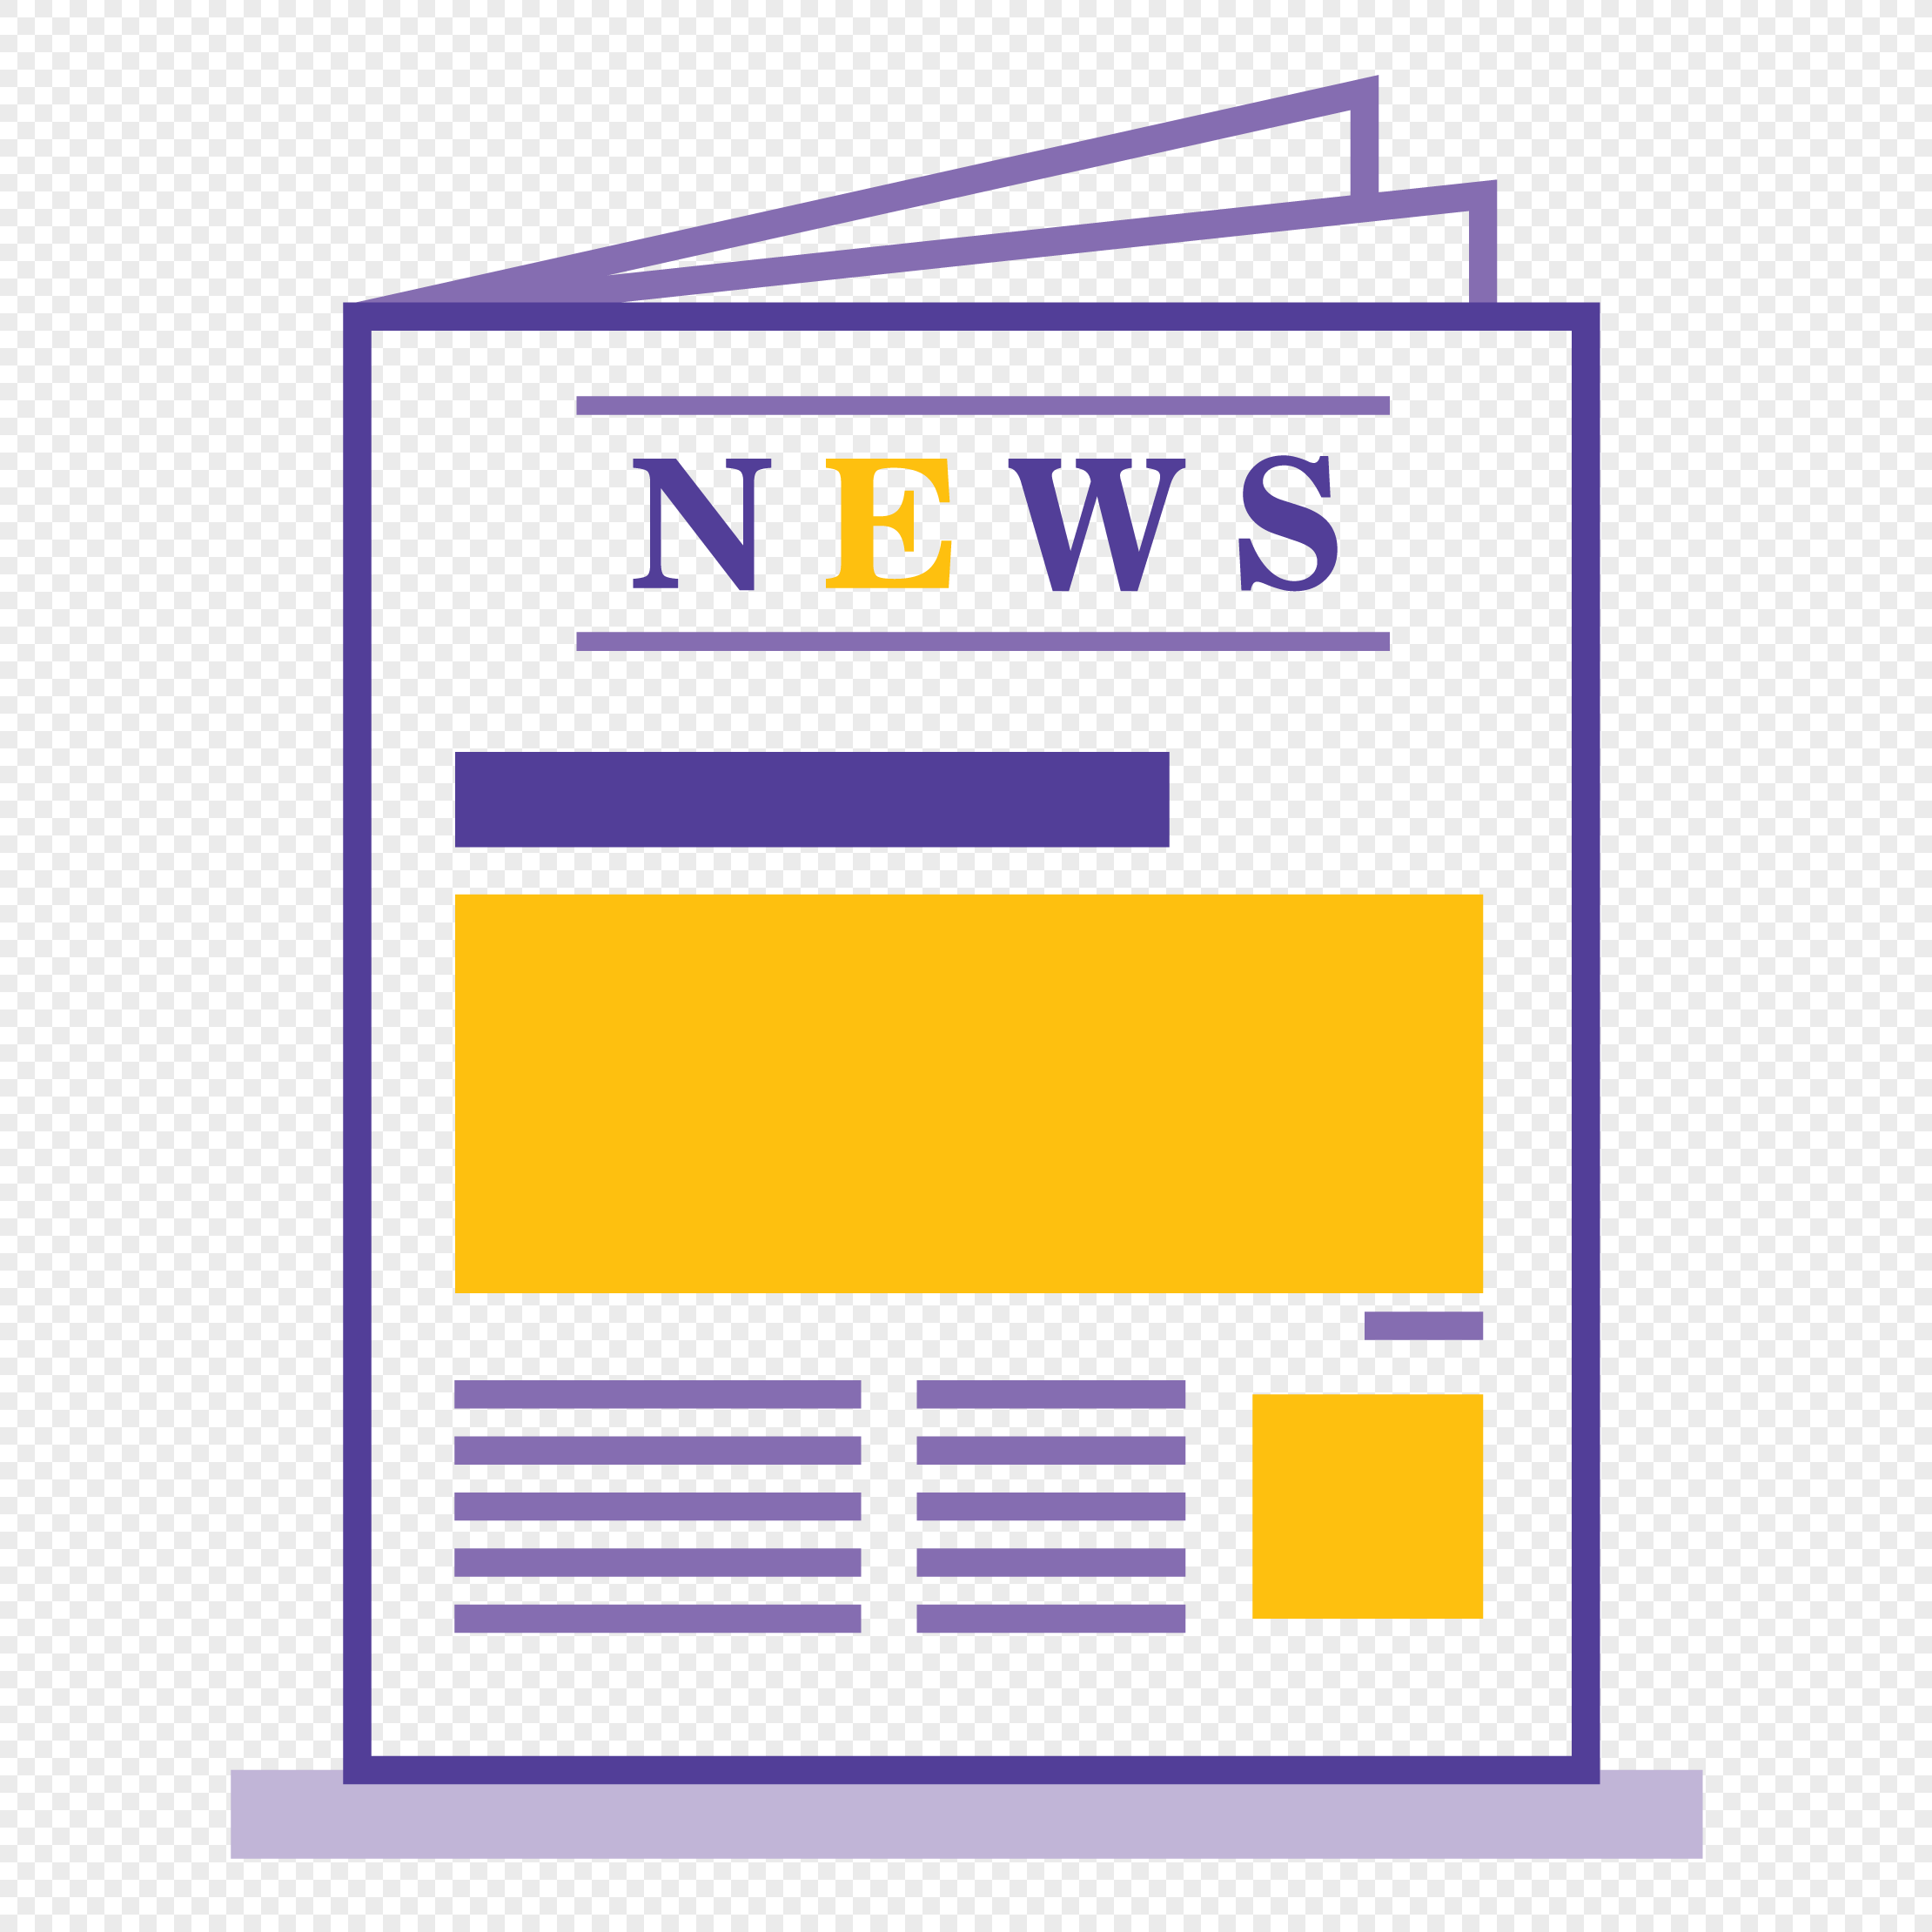 newspaper icons png image_picture free download 400533919_lovepik